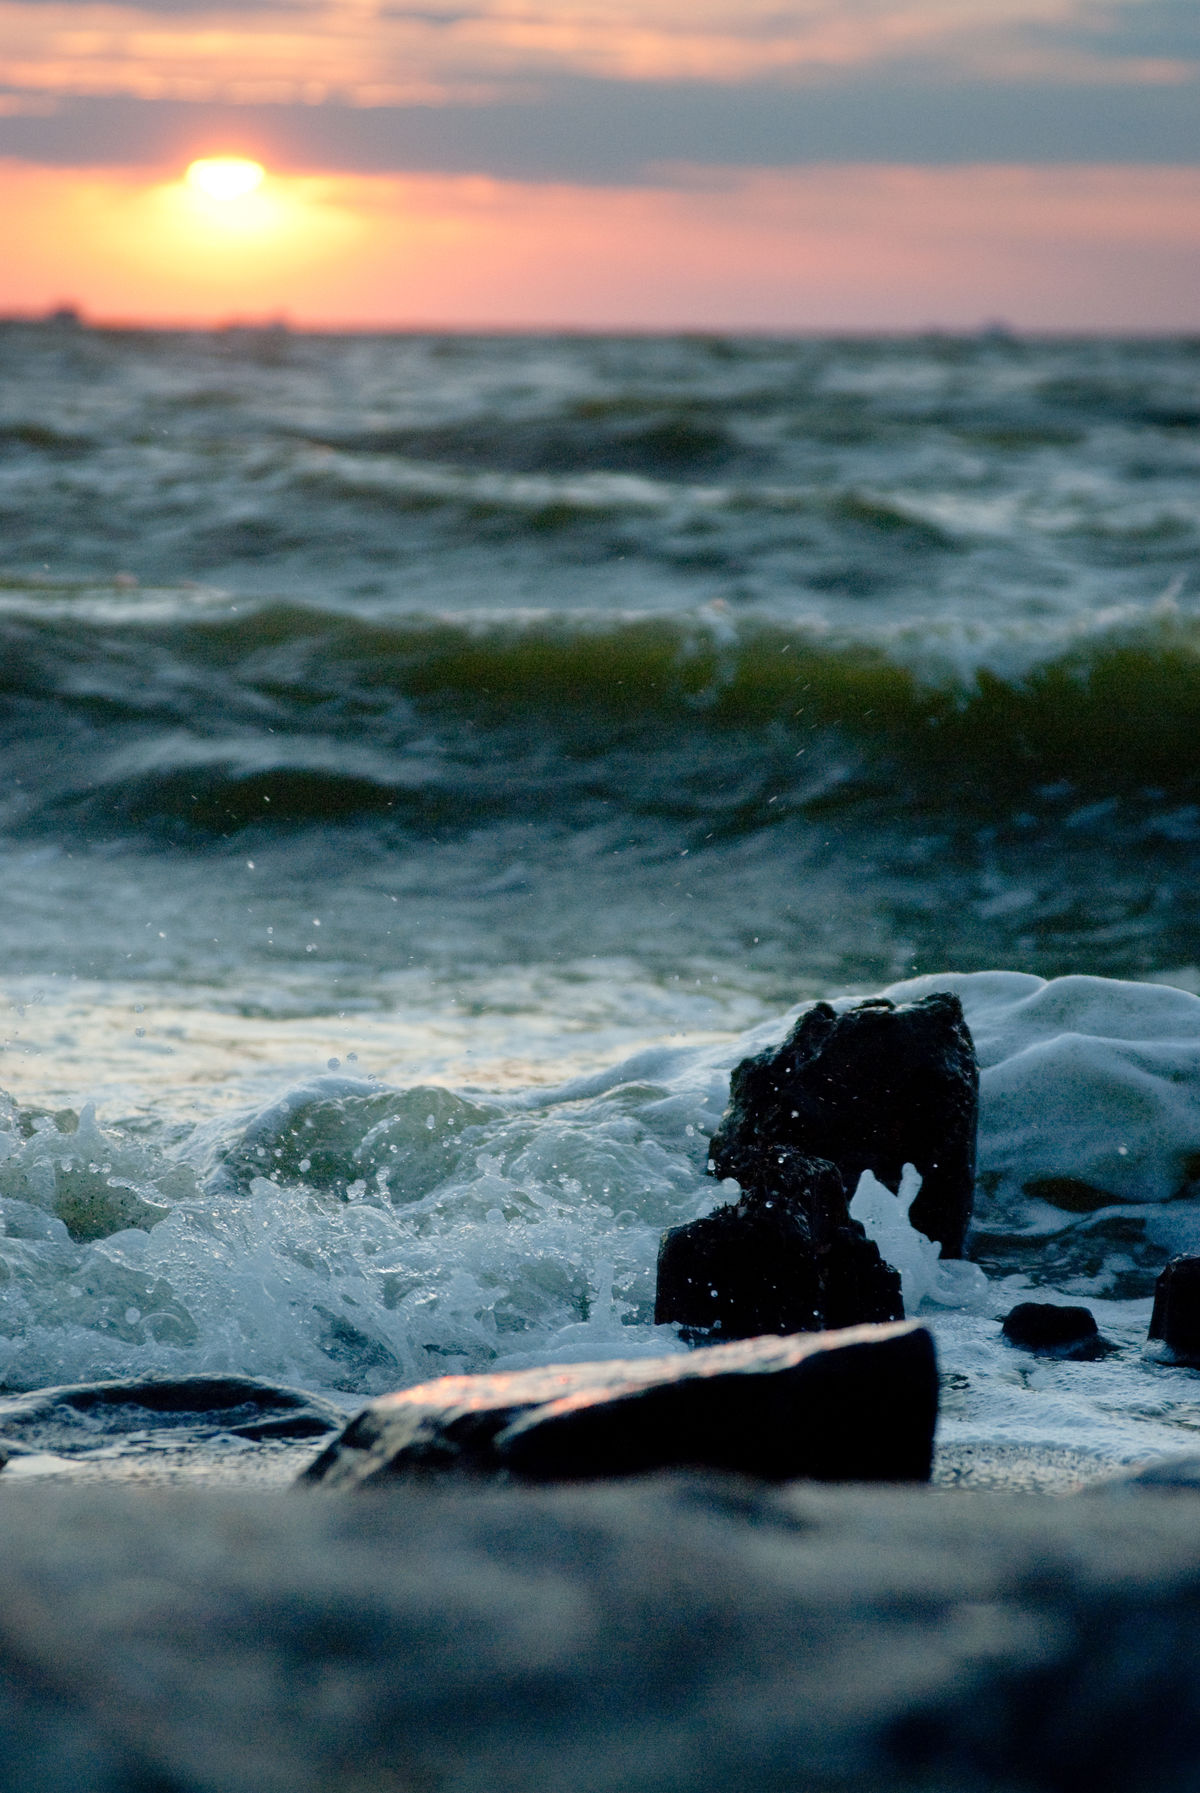 Azov Sea Beach Beating Waves Beauty In Nature Close-up Day Horizon Over Water Nature No People Outdoors River Scenics Sea Sky Stone Sunset The Beat Of Waves Water Wave White Foam